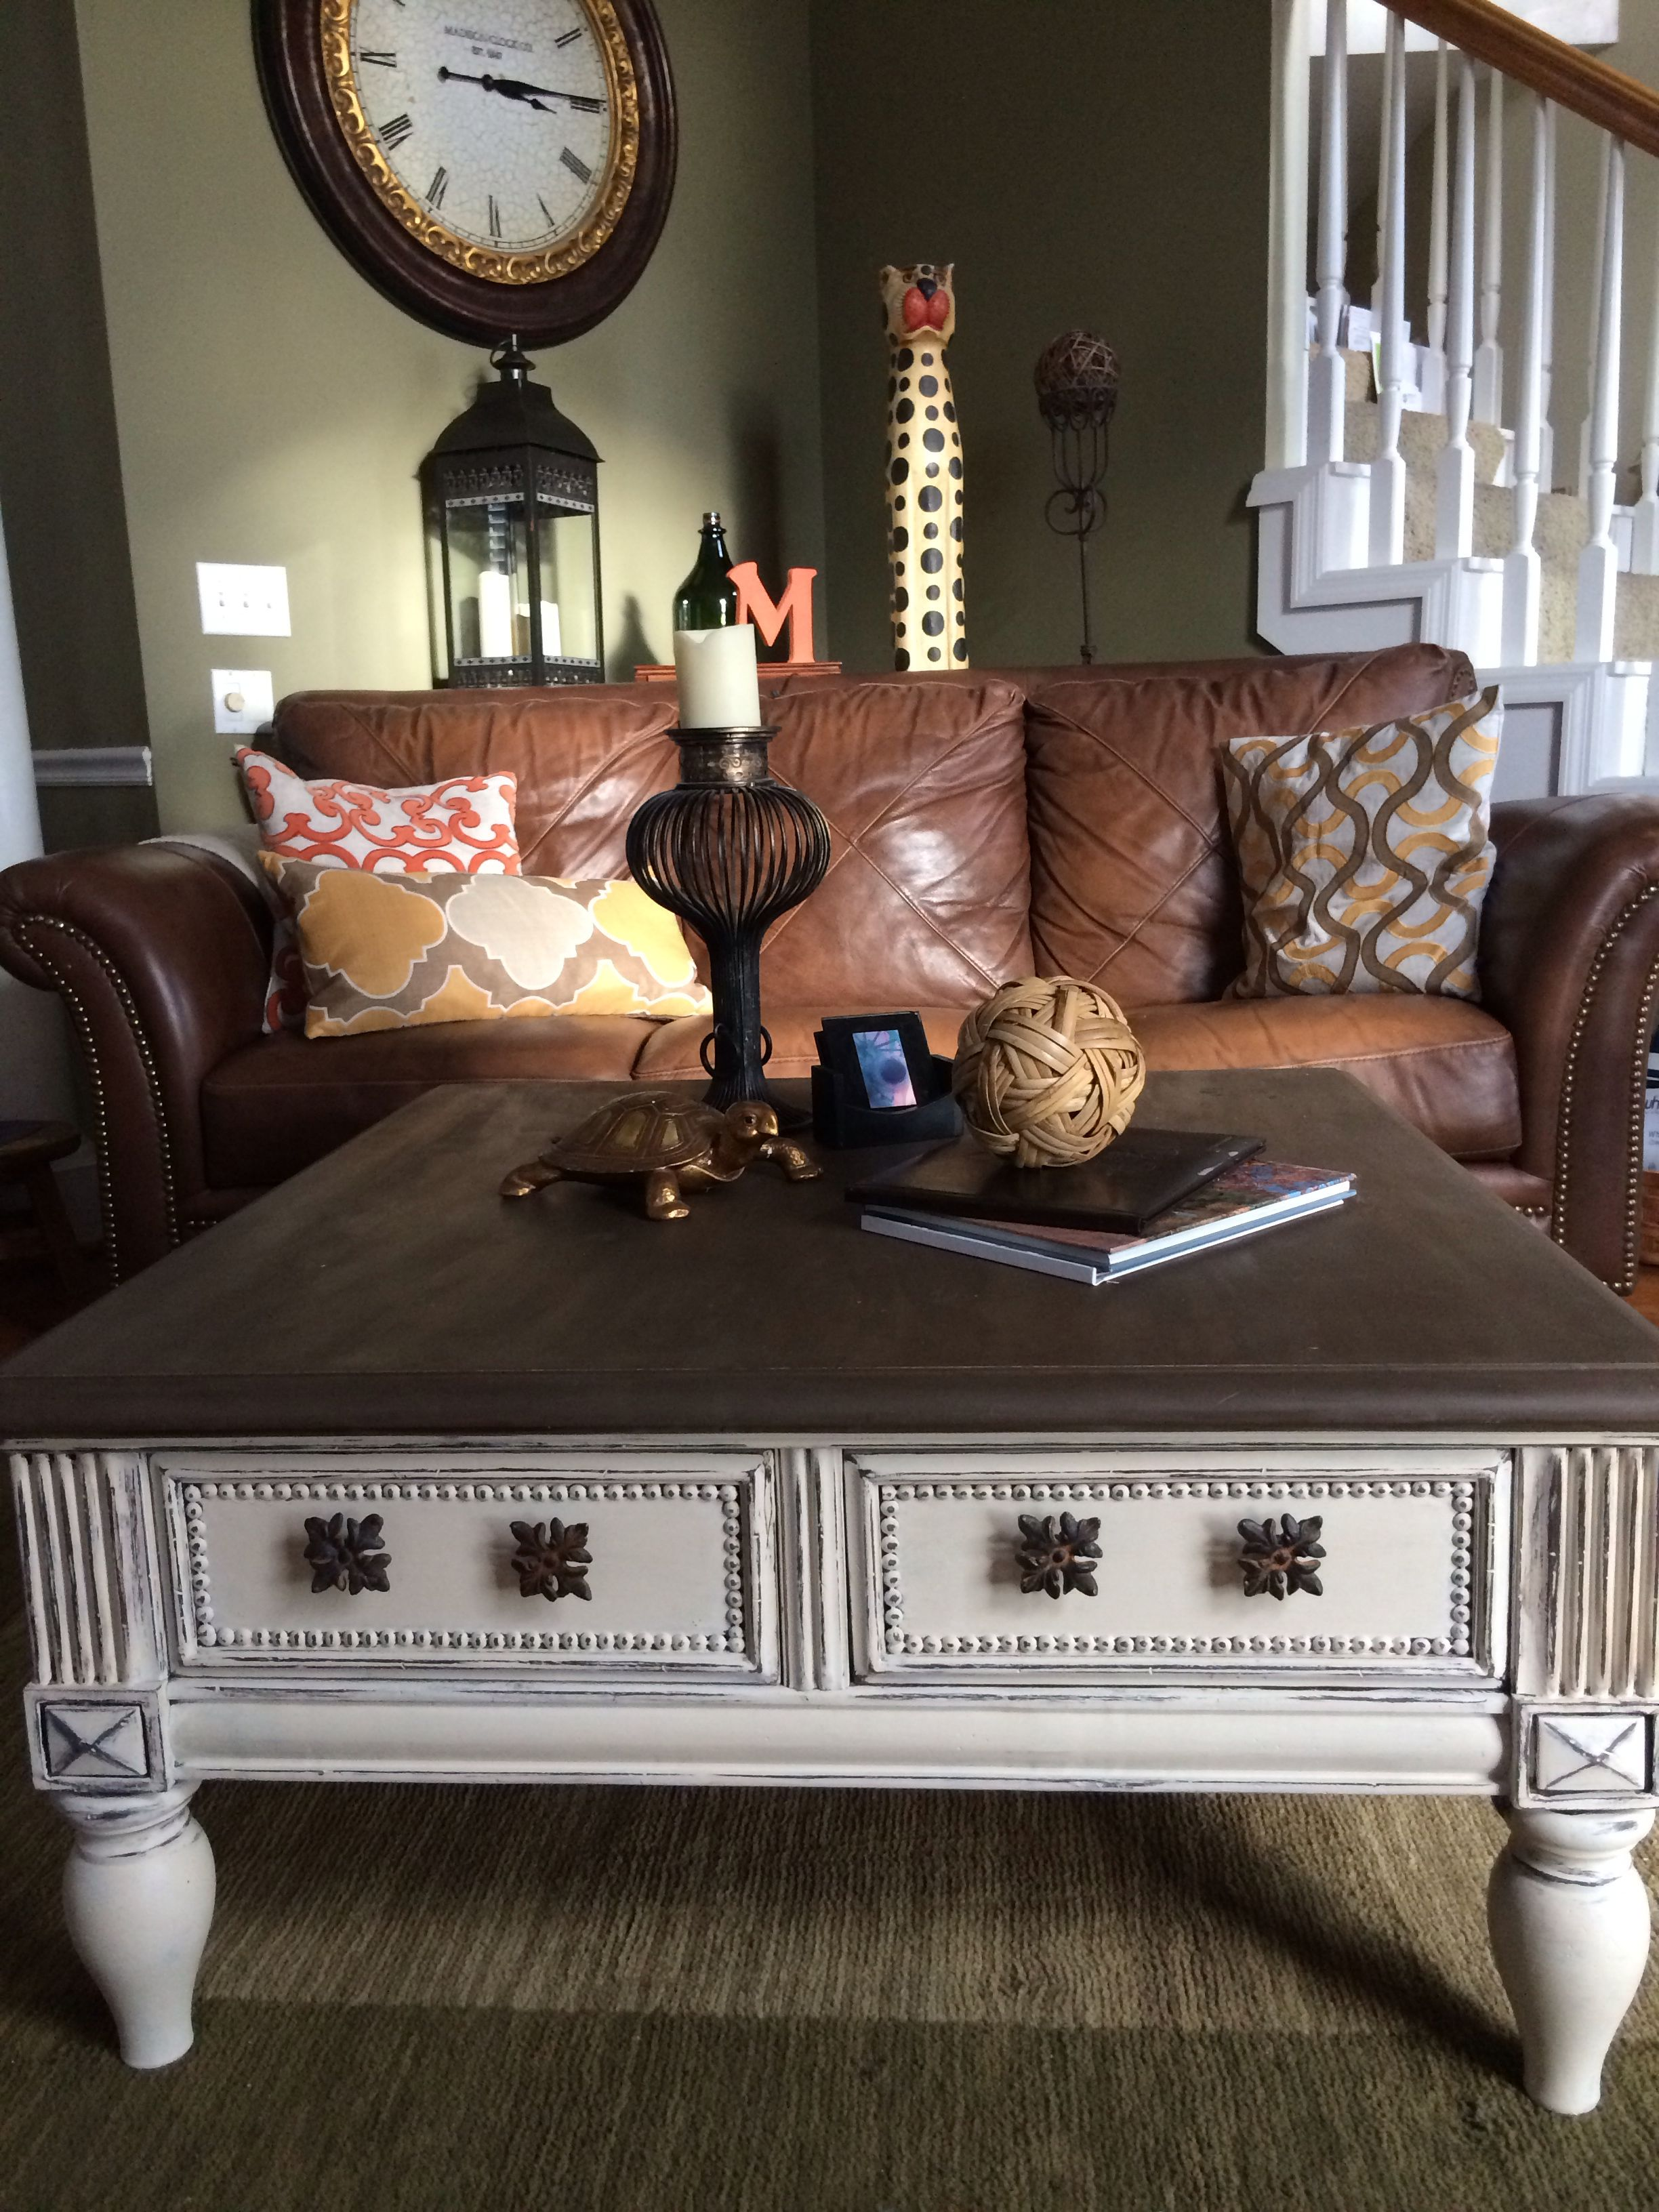 Pin By Stacey Collins On Wilshire Collections Painted Coffee Tables Diy Living Room Decor Coffee Table [ 3264 x 2448 Pixel ]